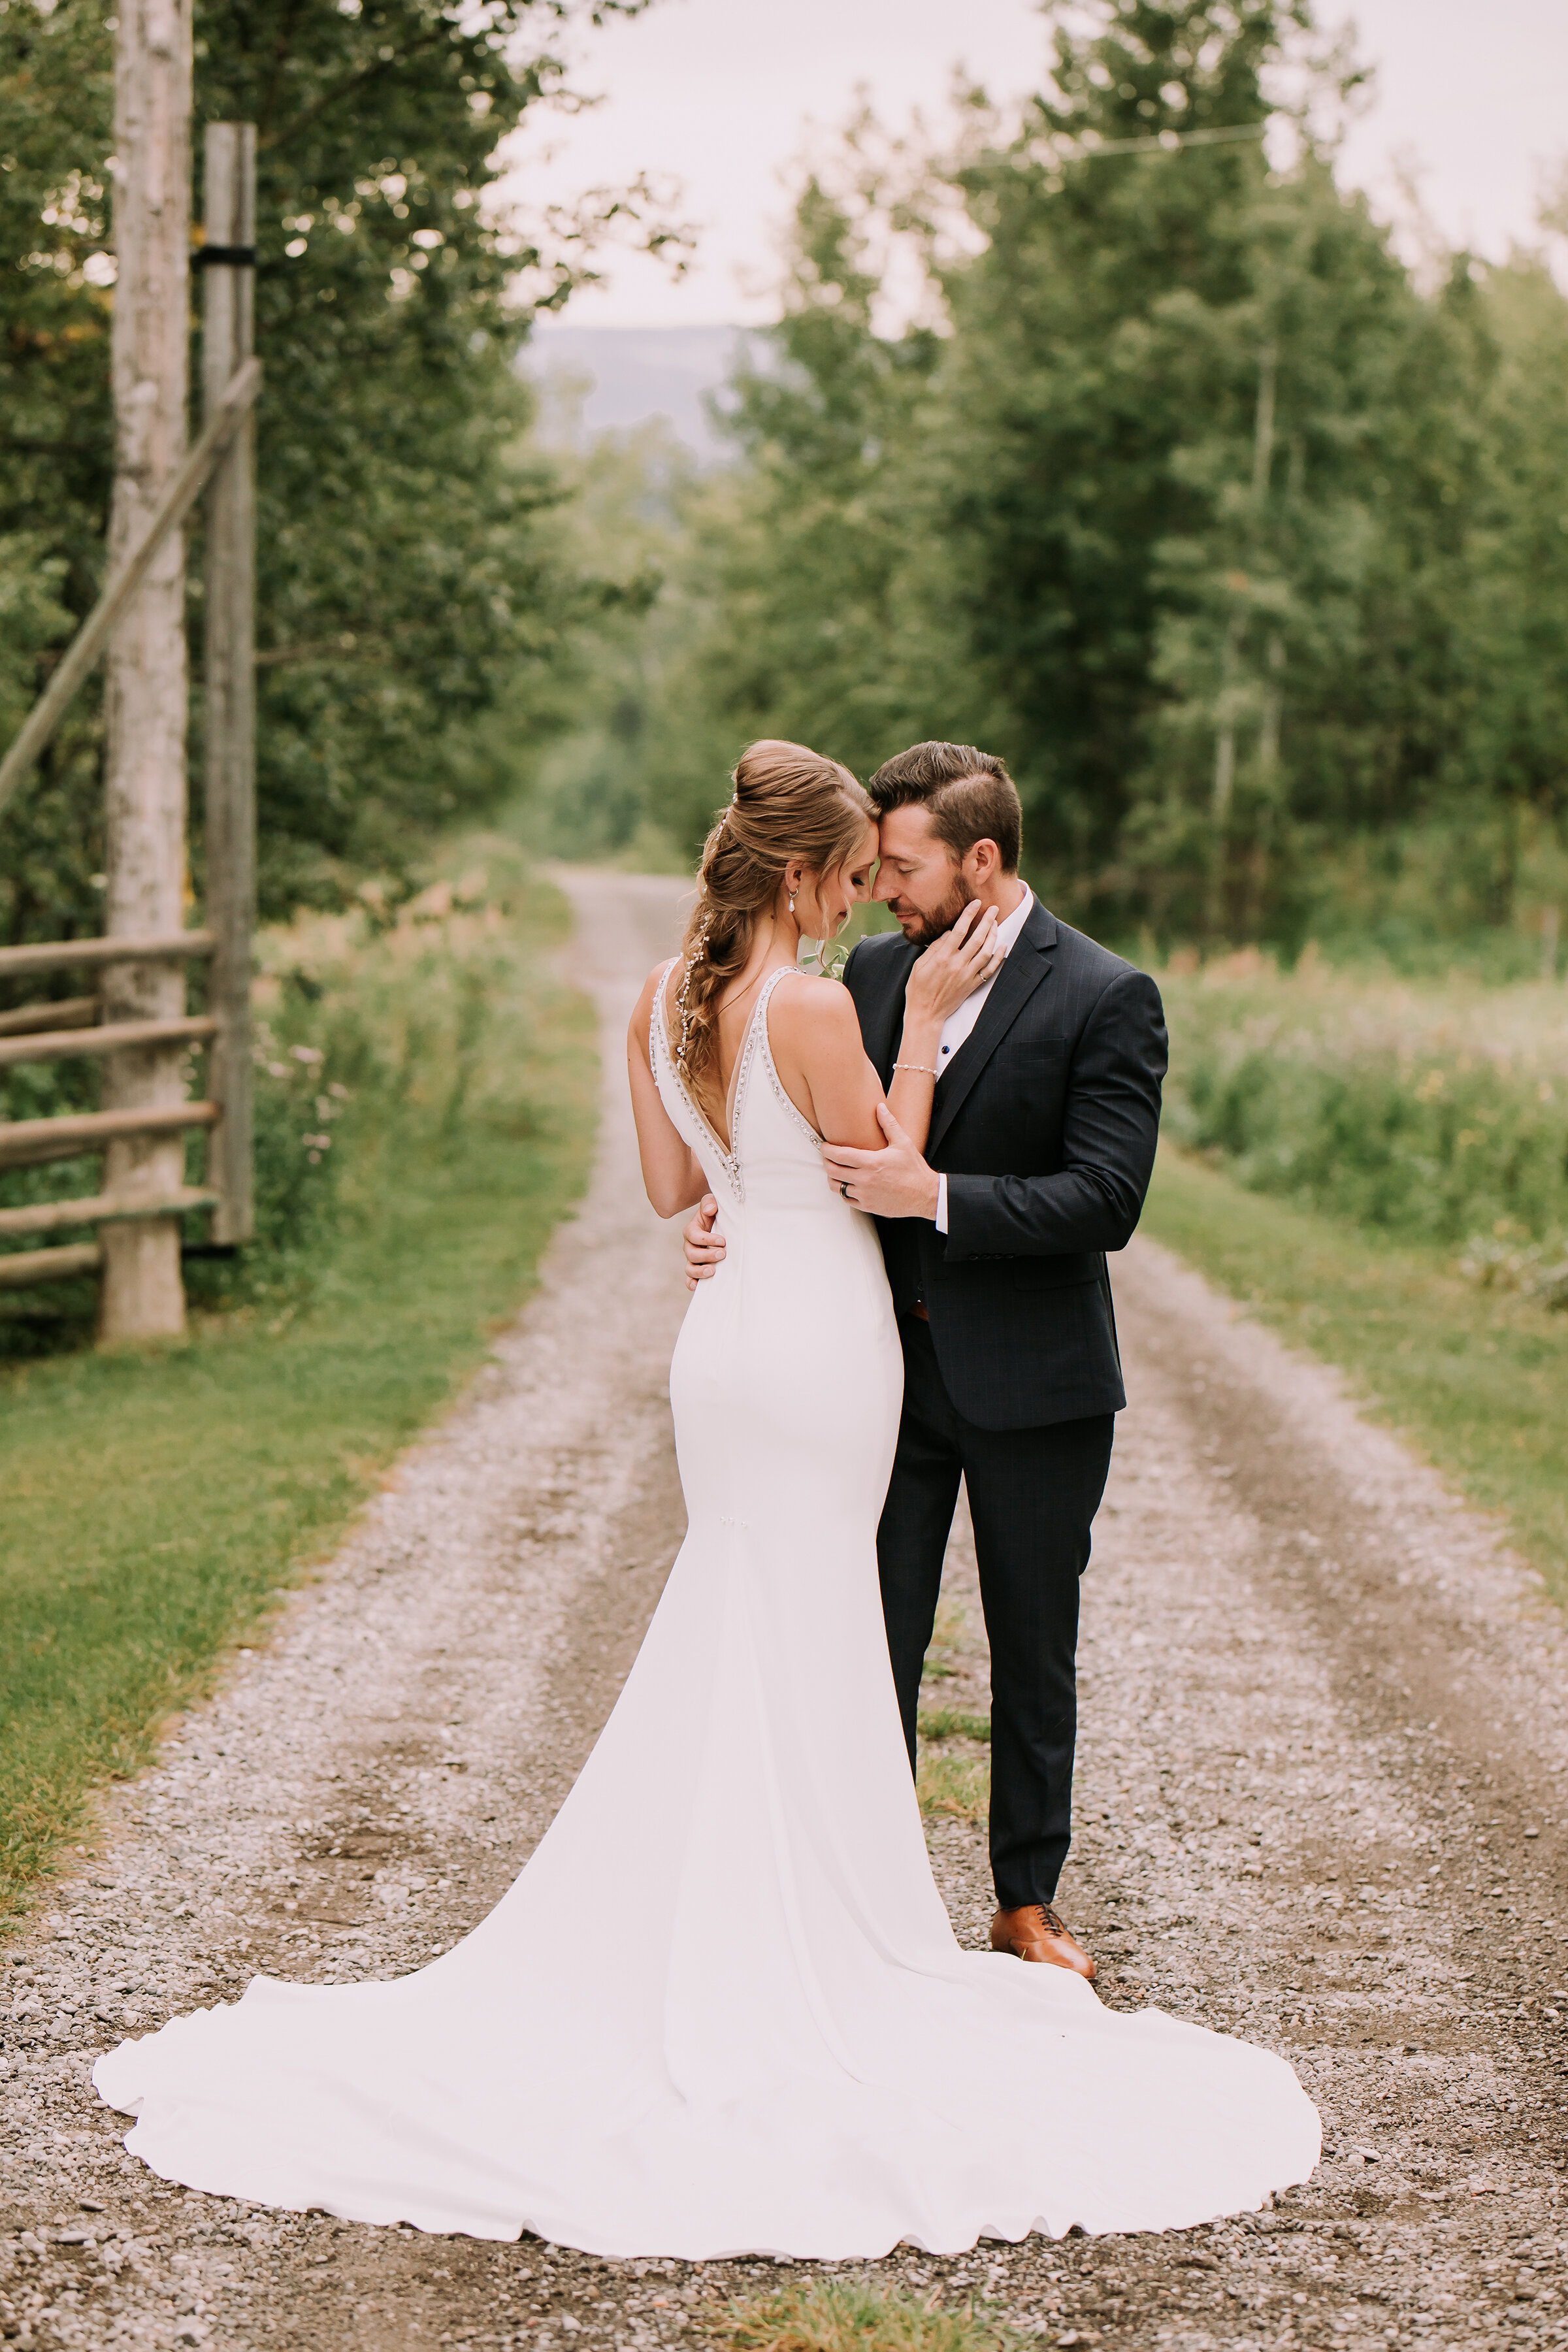 This Unconventional Farm Wedding Breaks All the Rules and We Love it // Mark & Saphron - on the Bronte Bride Blog